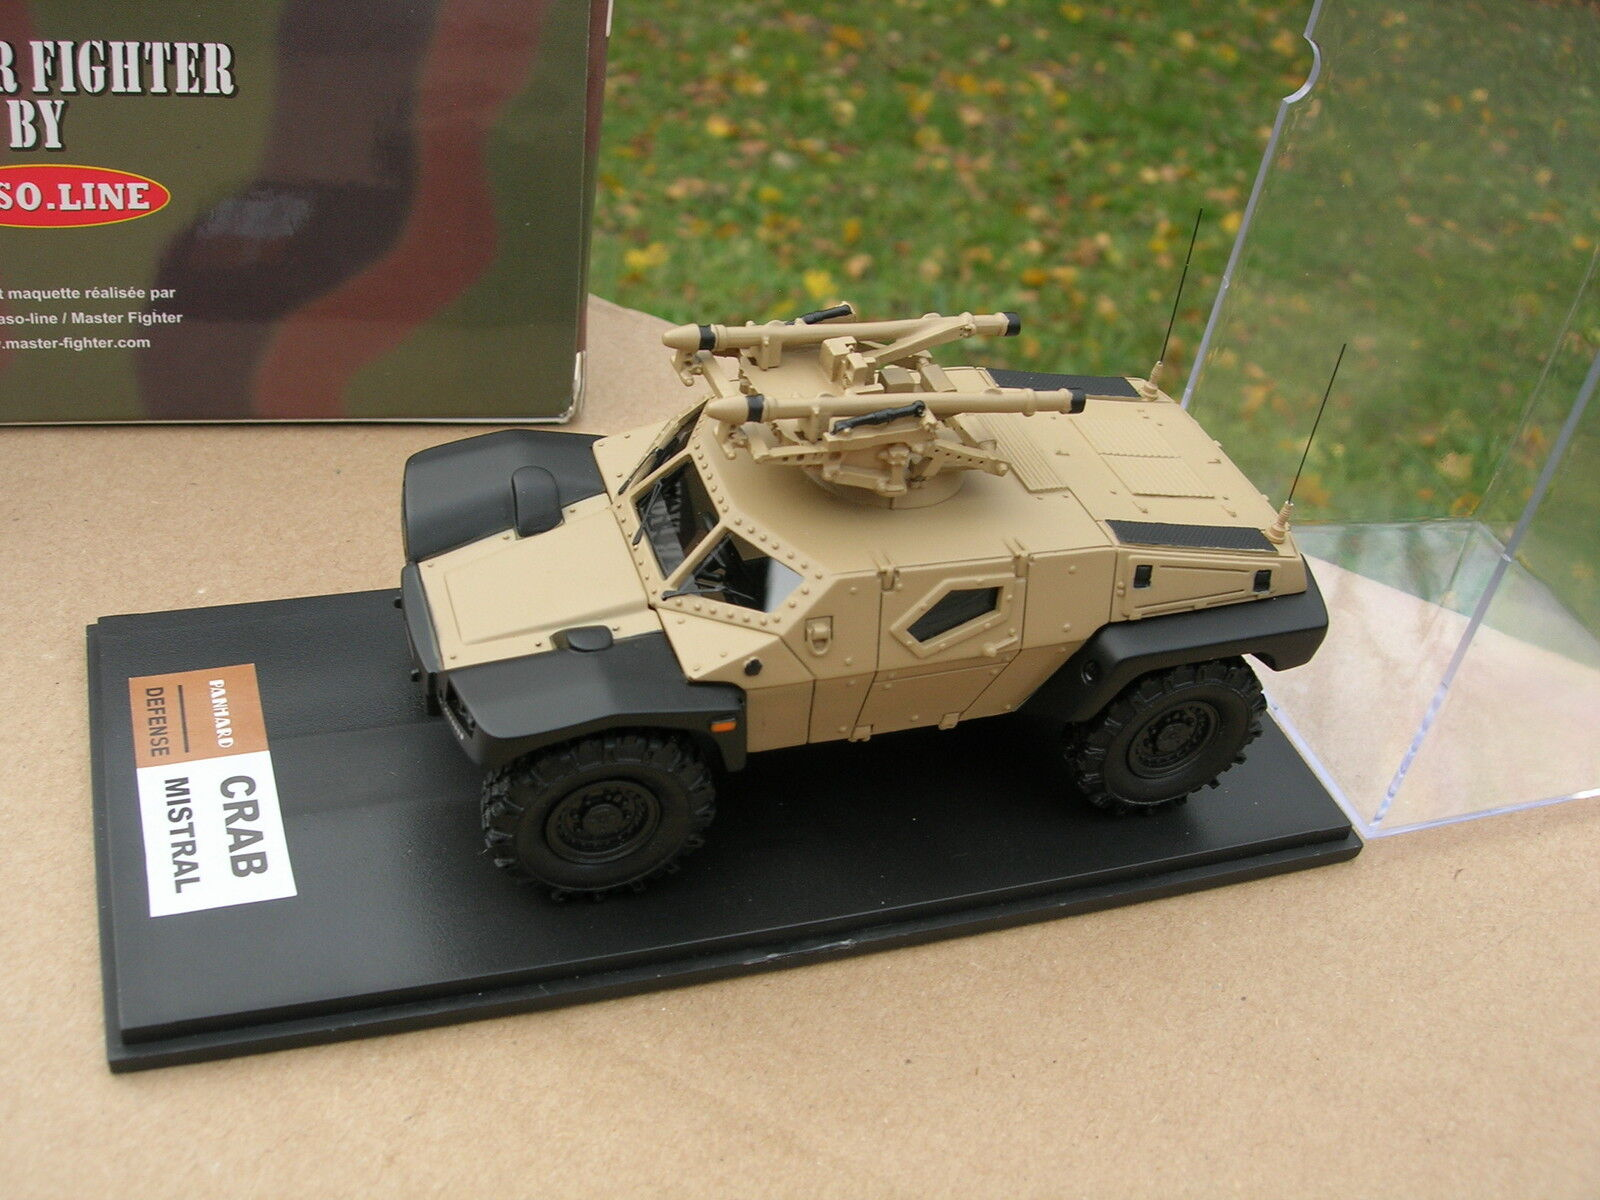 Master fighter 1 48  military 4x4 panhard  crab  mistral sand ref48556sc  pas de taxes